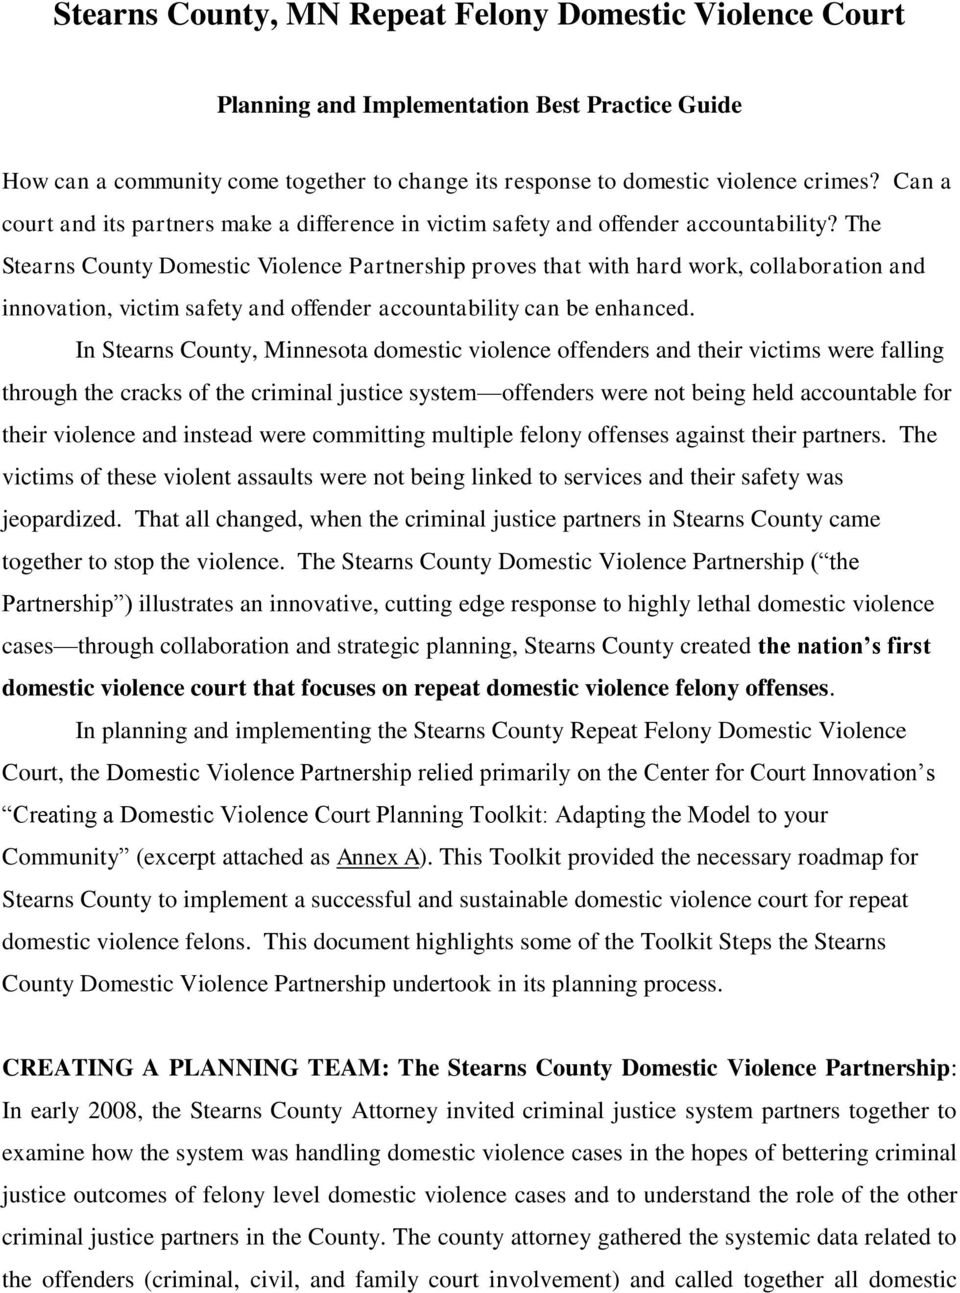 The Stearns County Domestic Violence Partnership proves that with hard work, collaboration and innovation, victim safety and offender accountability can be enhanced.